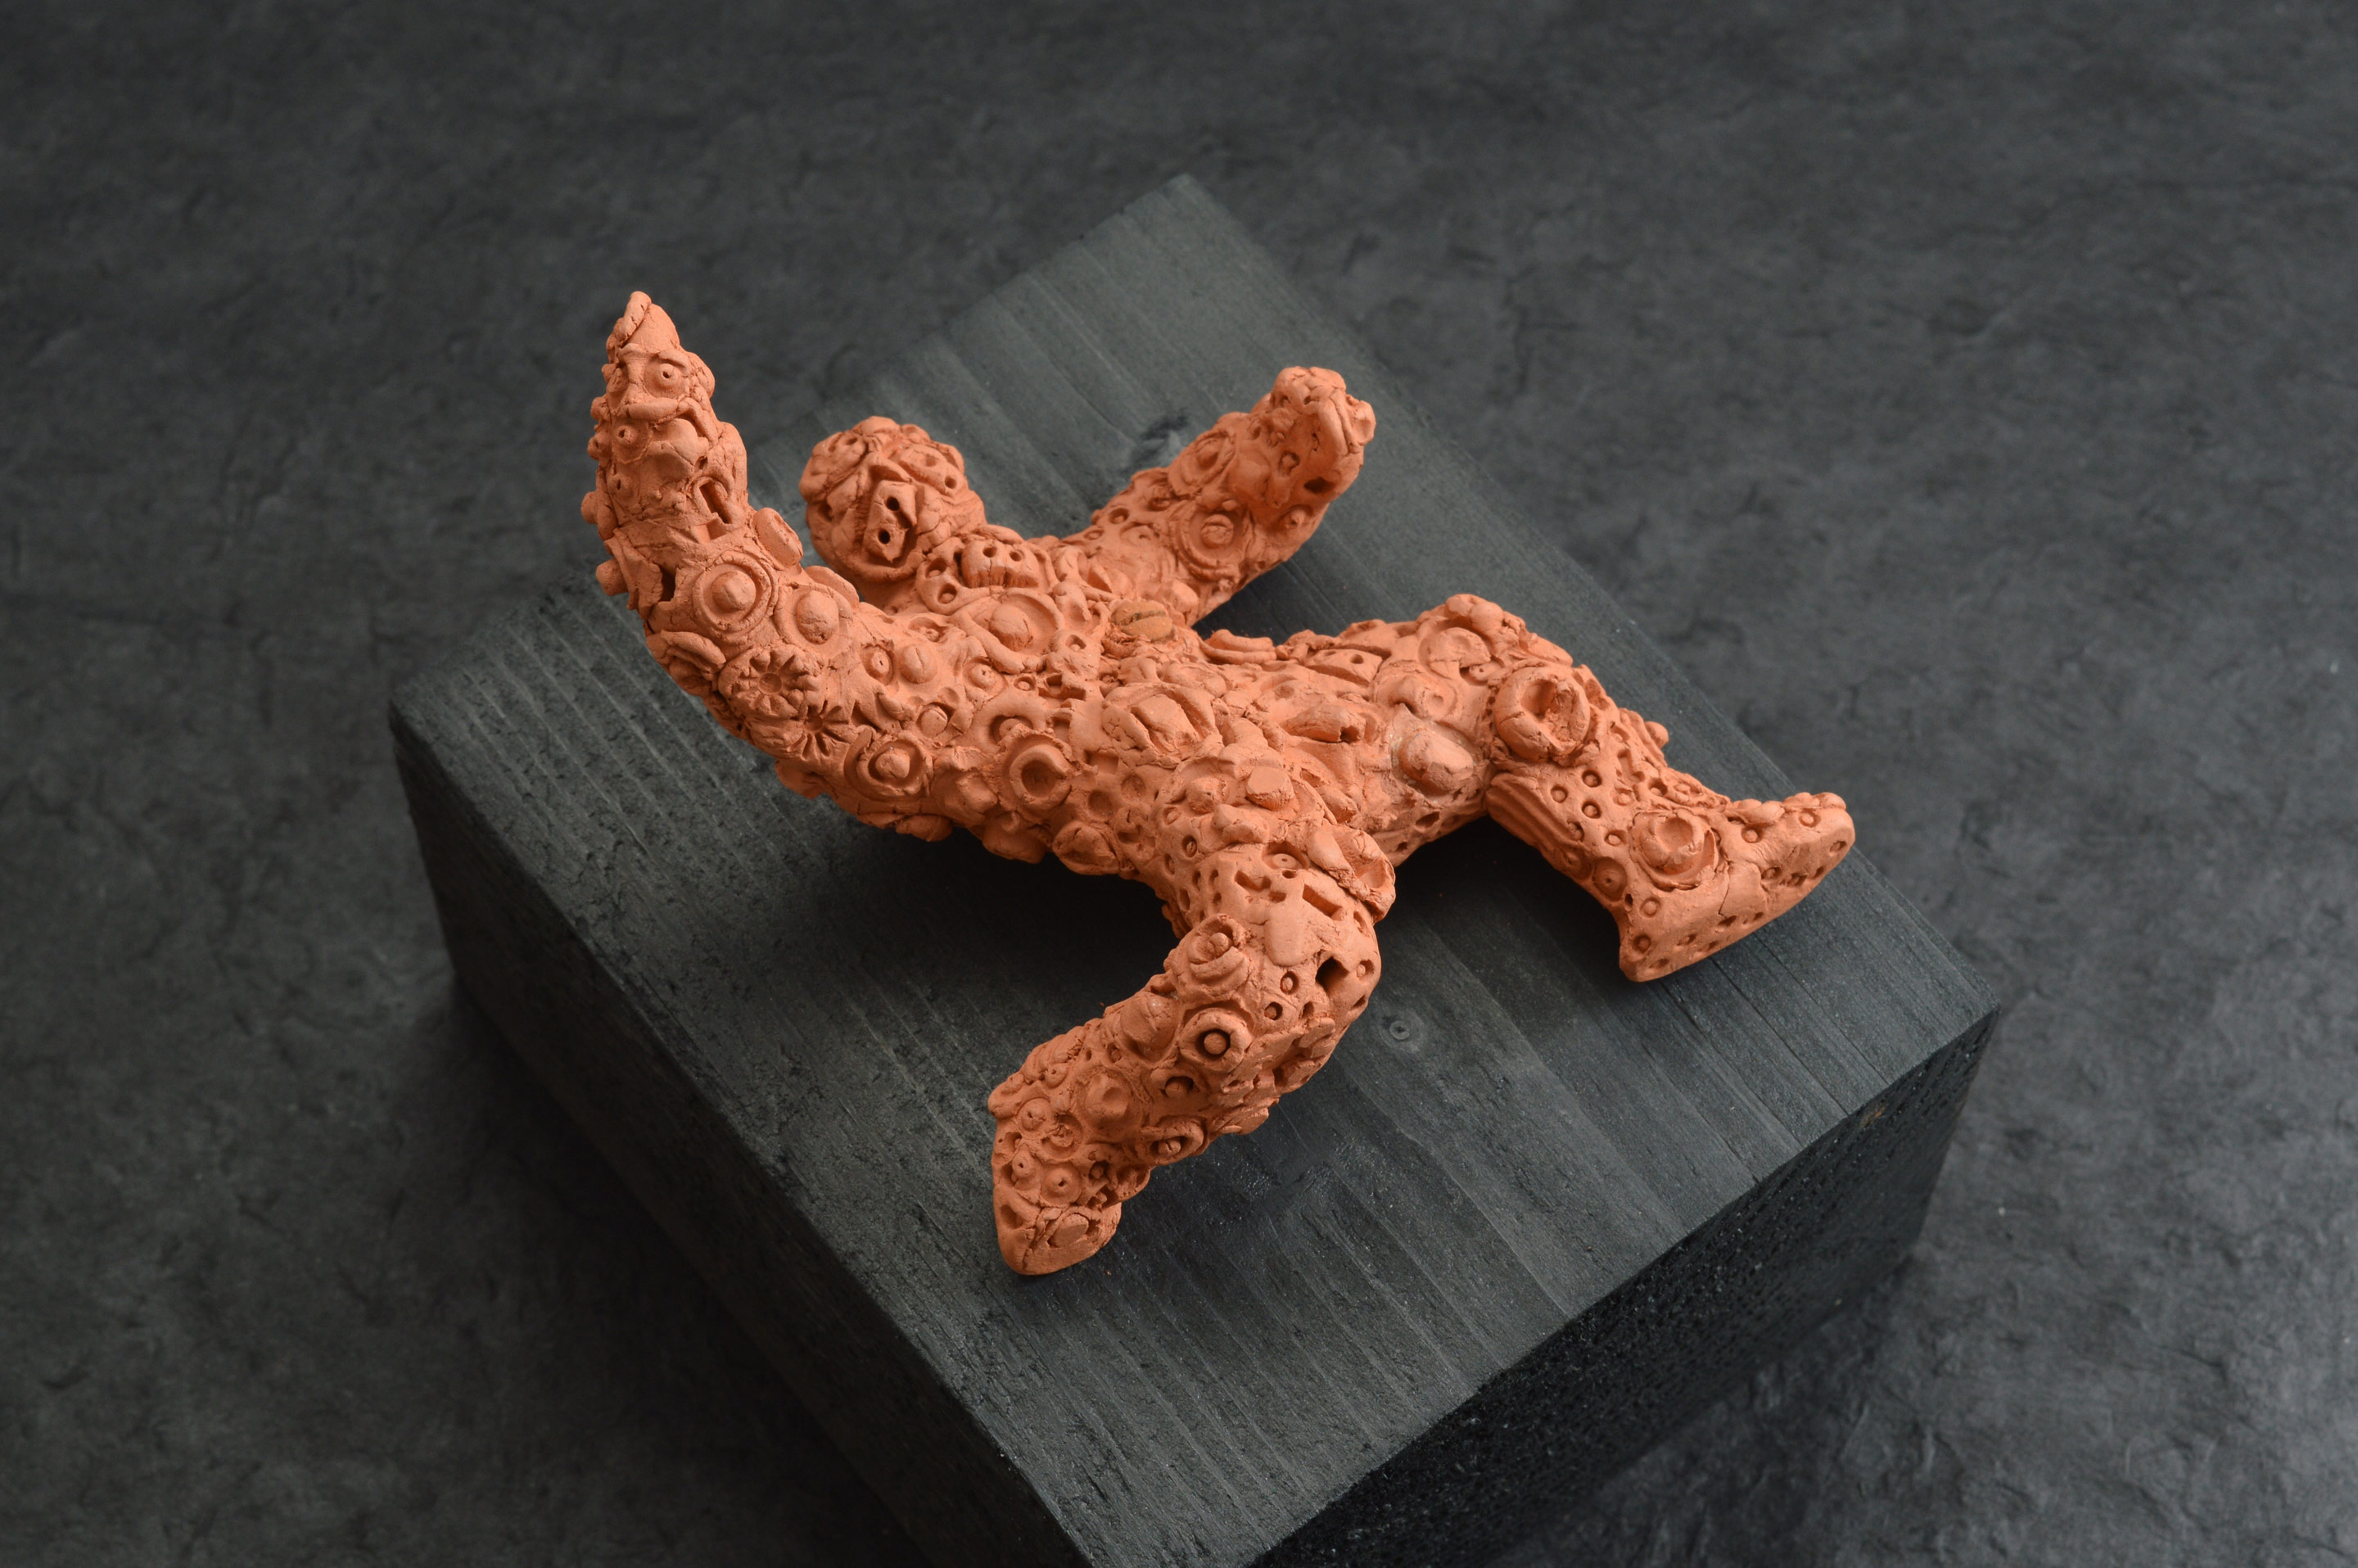 Falling Figure 01-operatic, an unglazed terracotta figure about 10cm in length encrusted with embossed forms